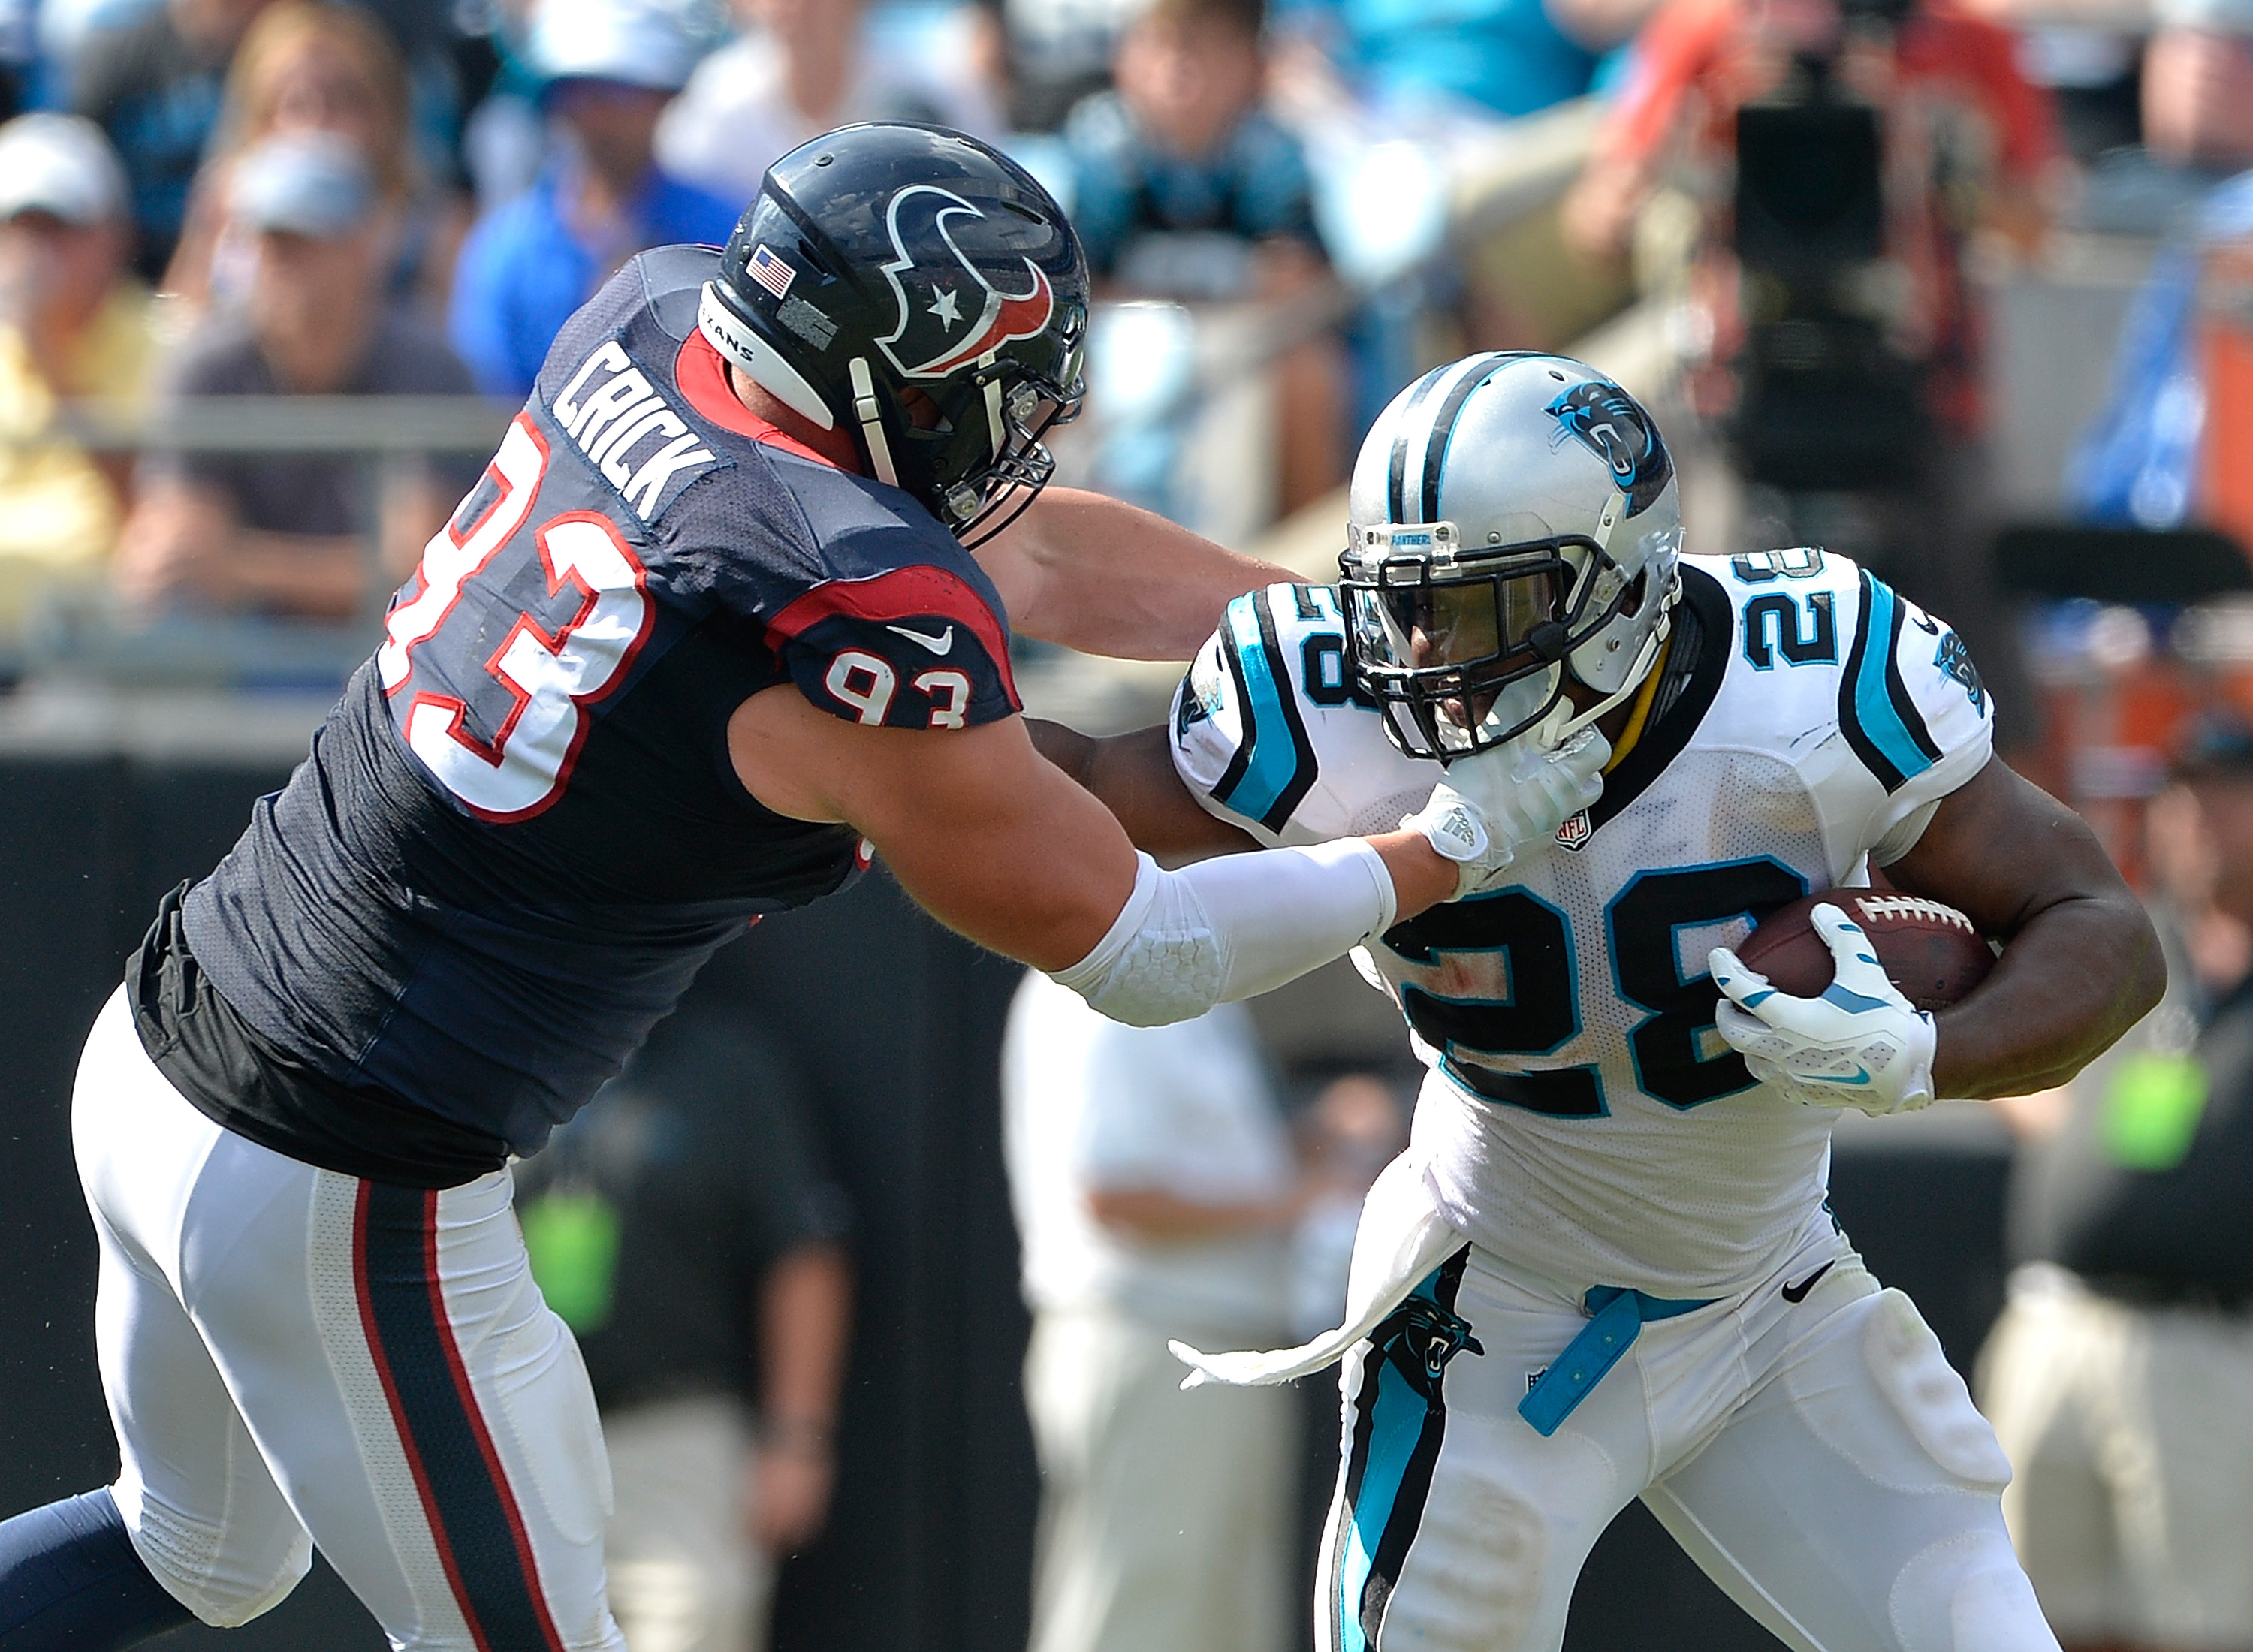 Jared Crick #93 of the Houston Texans tackles Jonathan Stewart #28 of the Carolina Panthers during their game at Bank of America Stadium on September 20, 2015 in Charlotte, North Carolina.  (Photo by Grant Halverson/Getty Images)